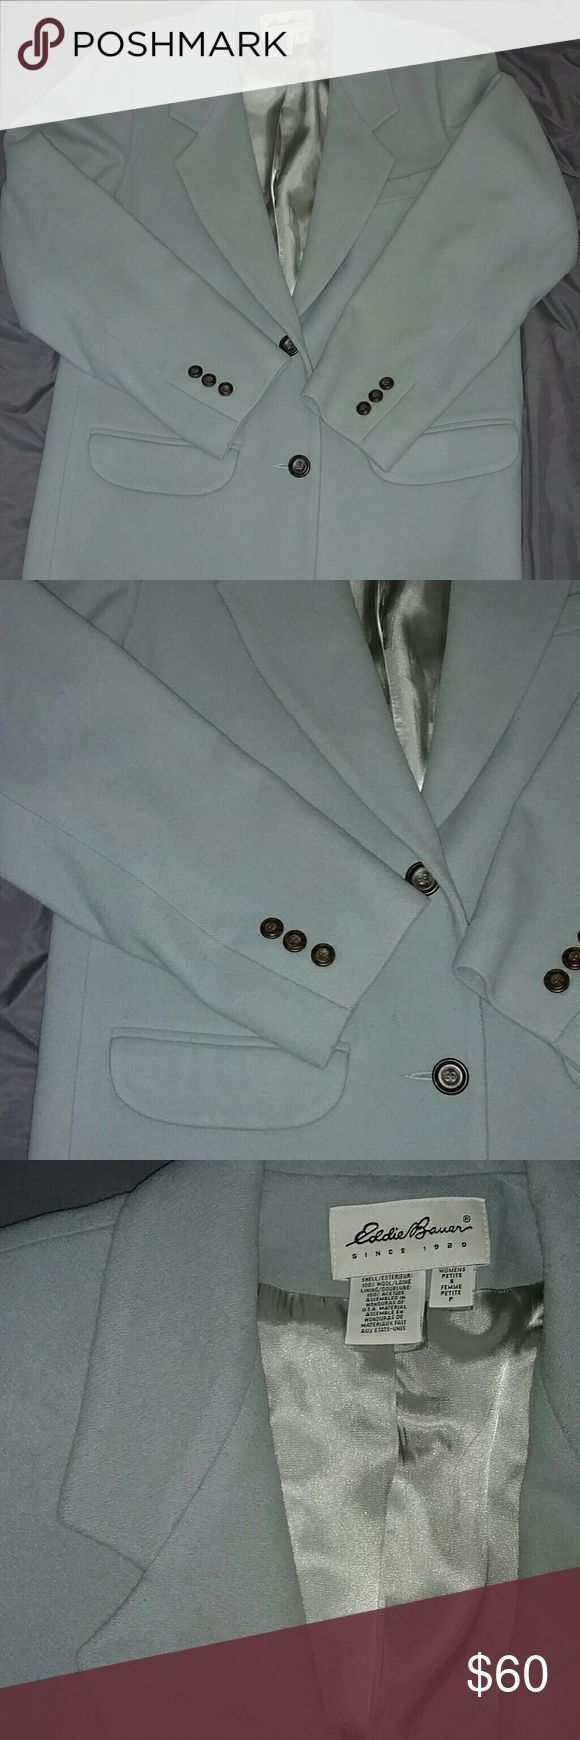 EDDIE BAUER Cool Mint Oversize Blazer Cool mint, vintage, over-sized blazer with tortoise style buttons. Winged collar with silk lining. 100% wool! Super warm! AWESOME CONDITION!! Great over a neutral outfit with dark accents. Let me know if you have any questions 😀 Eddie Bauer Jackets & Coats Blazers